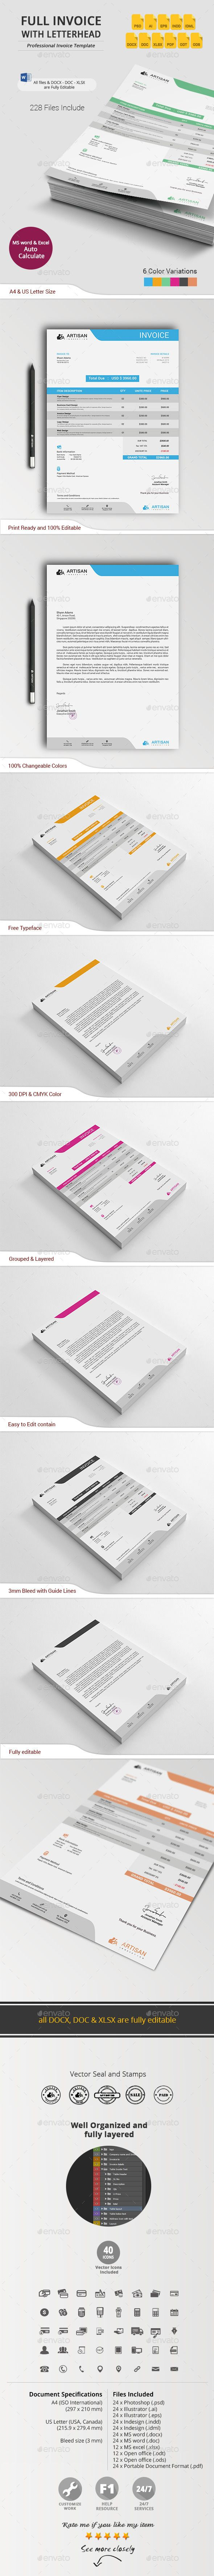 616 best Invoice images on Pinterest | Invoice template, Invoice ...